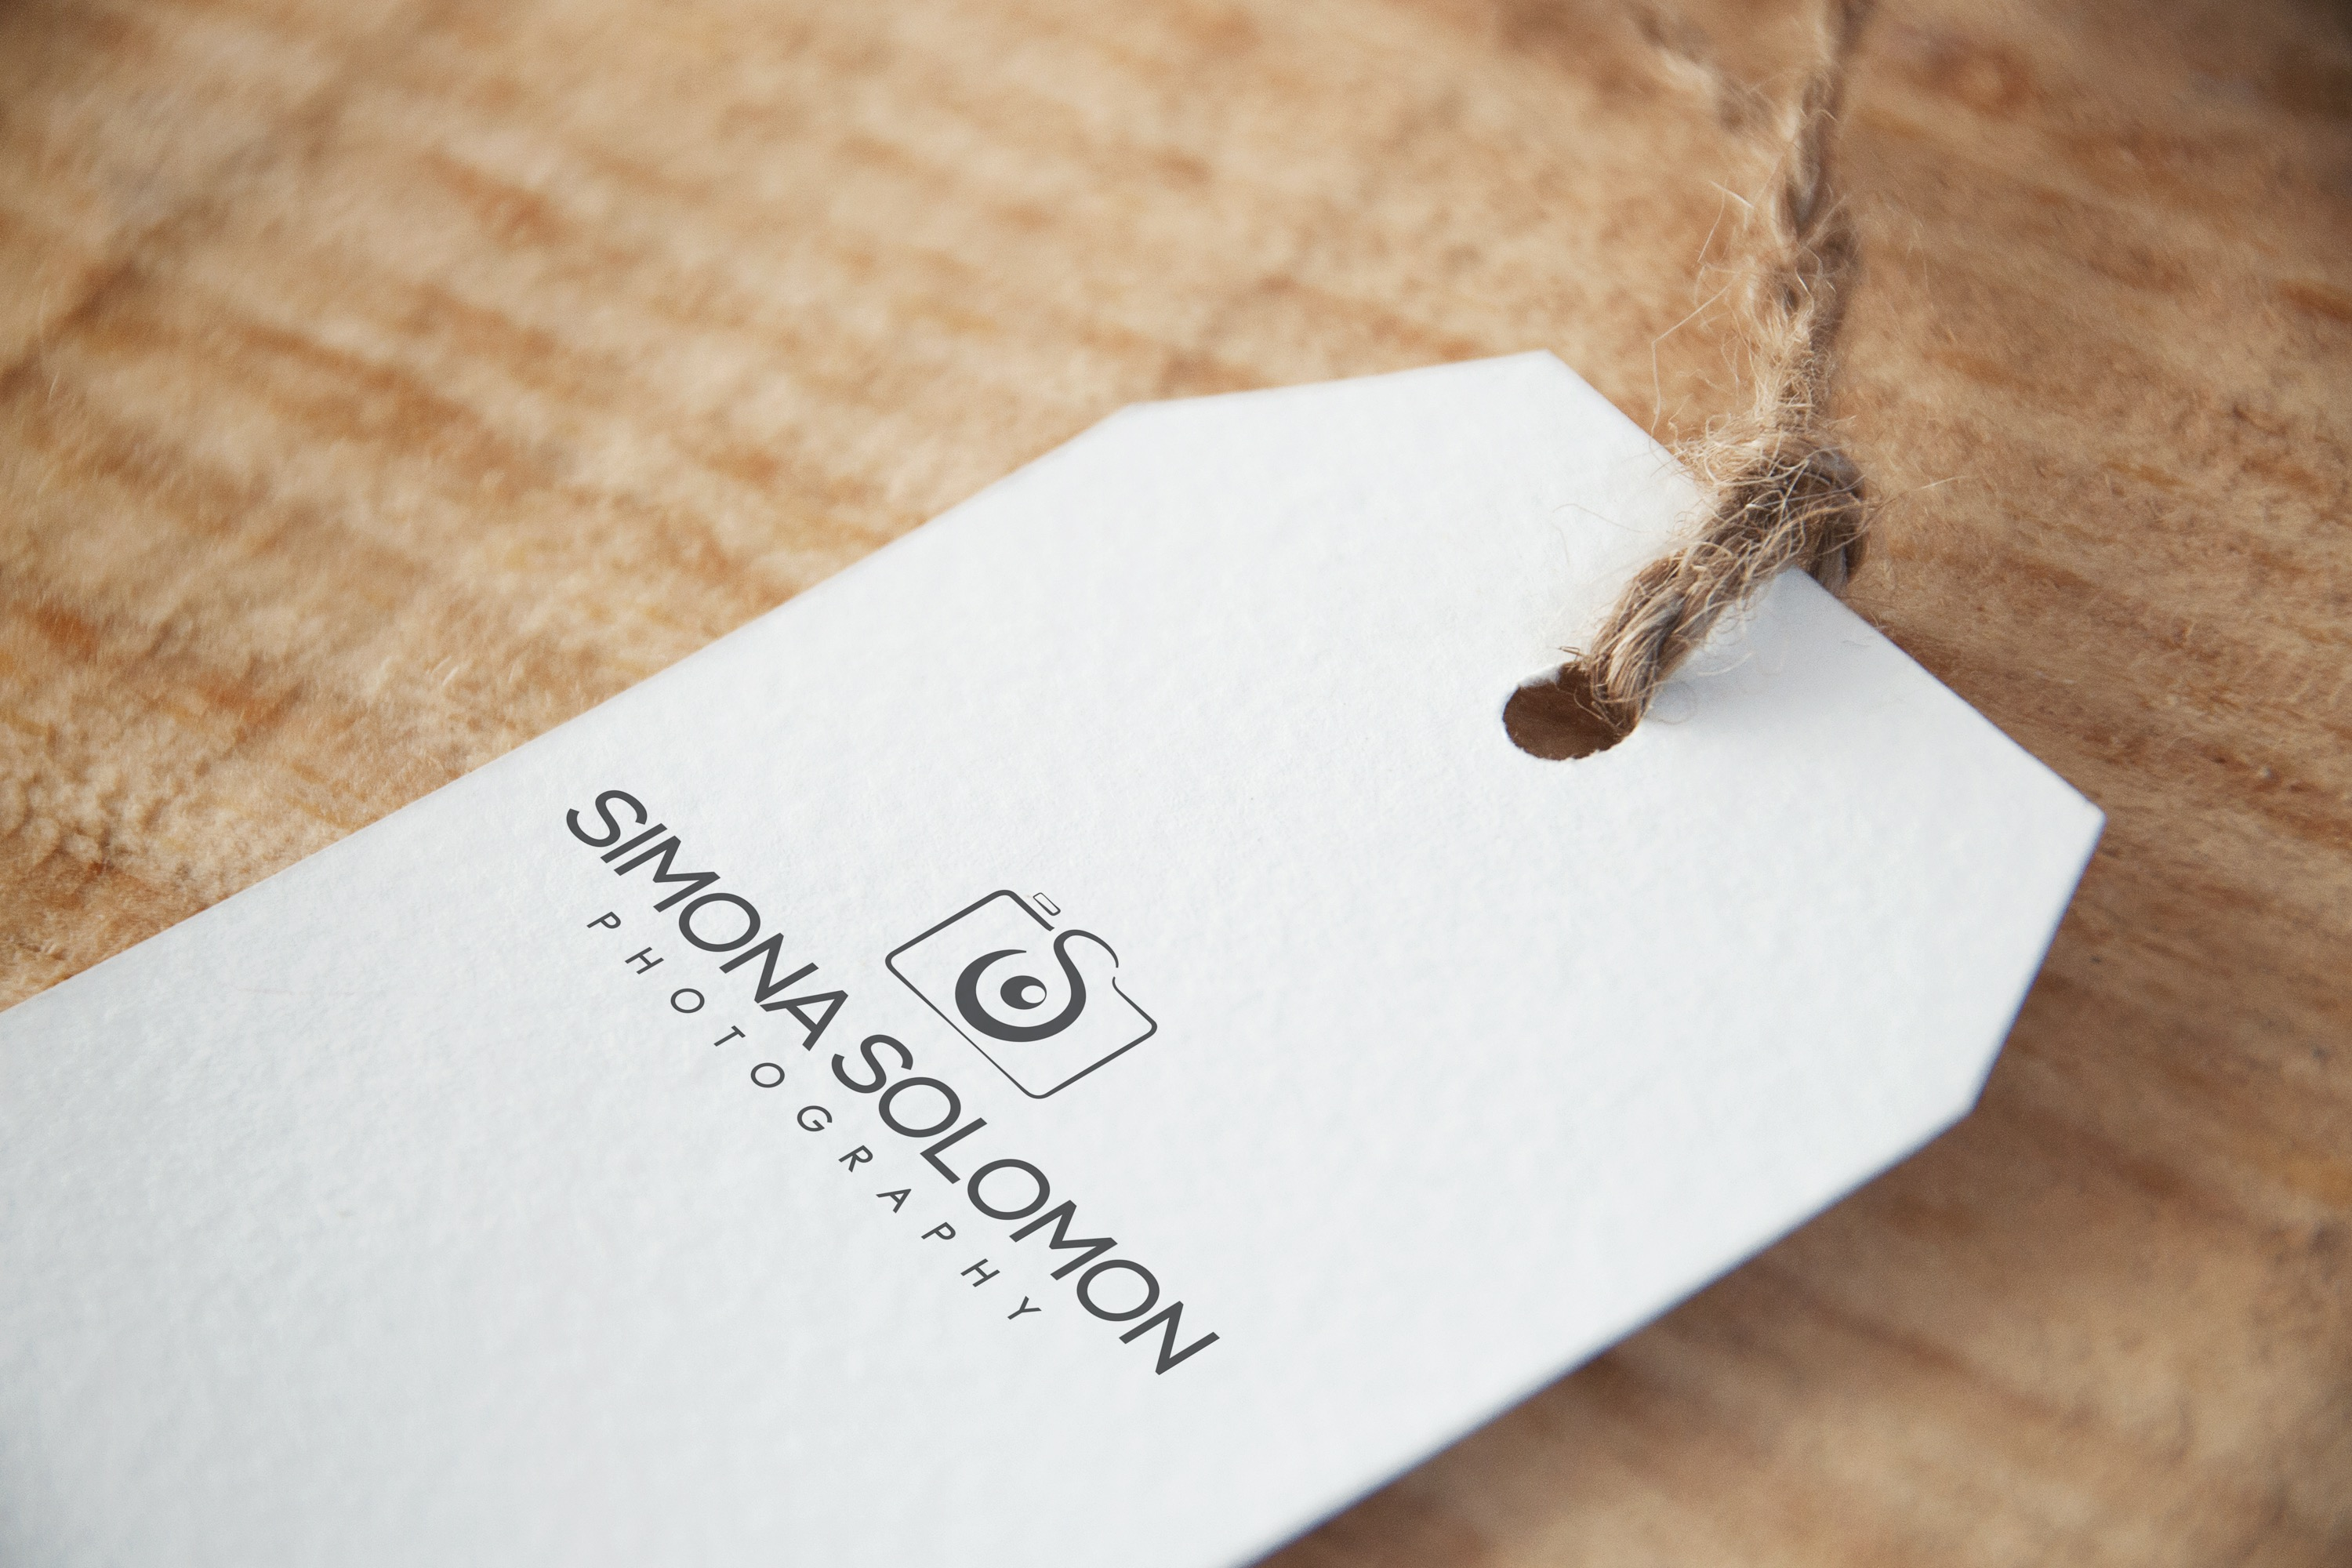 3095_Simona_Solomon_photography_LOGO_Moc